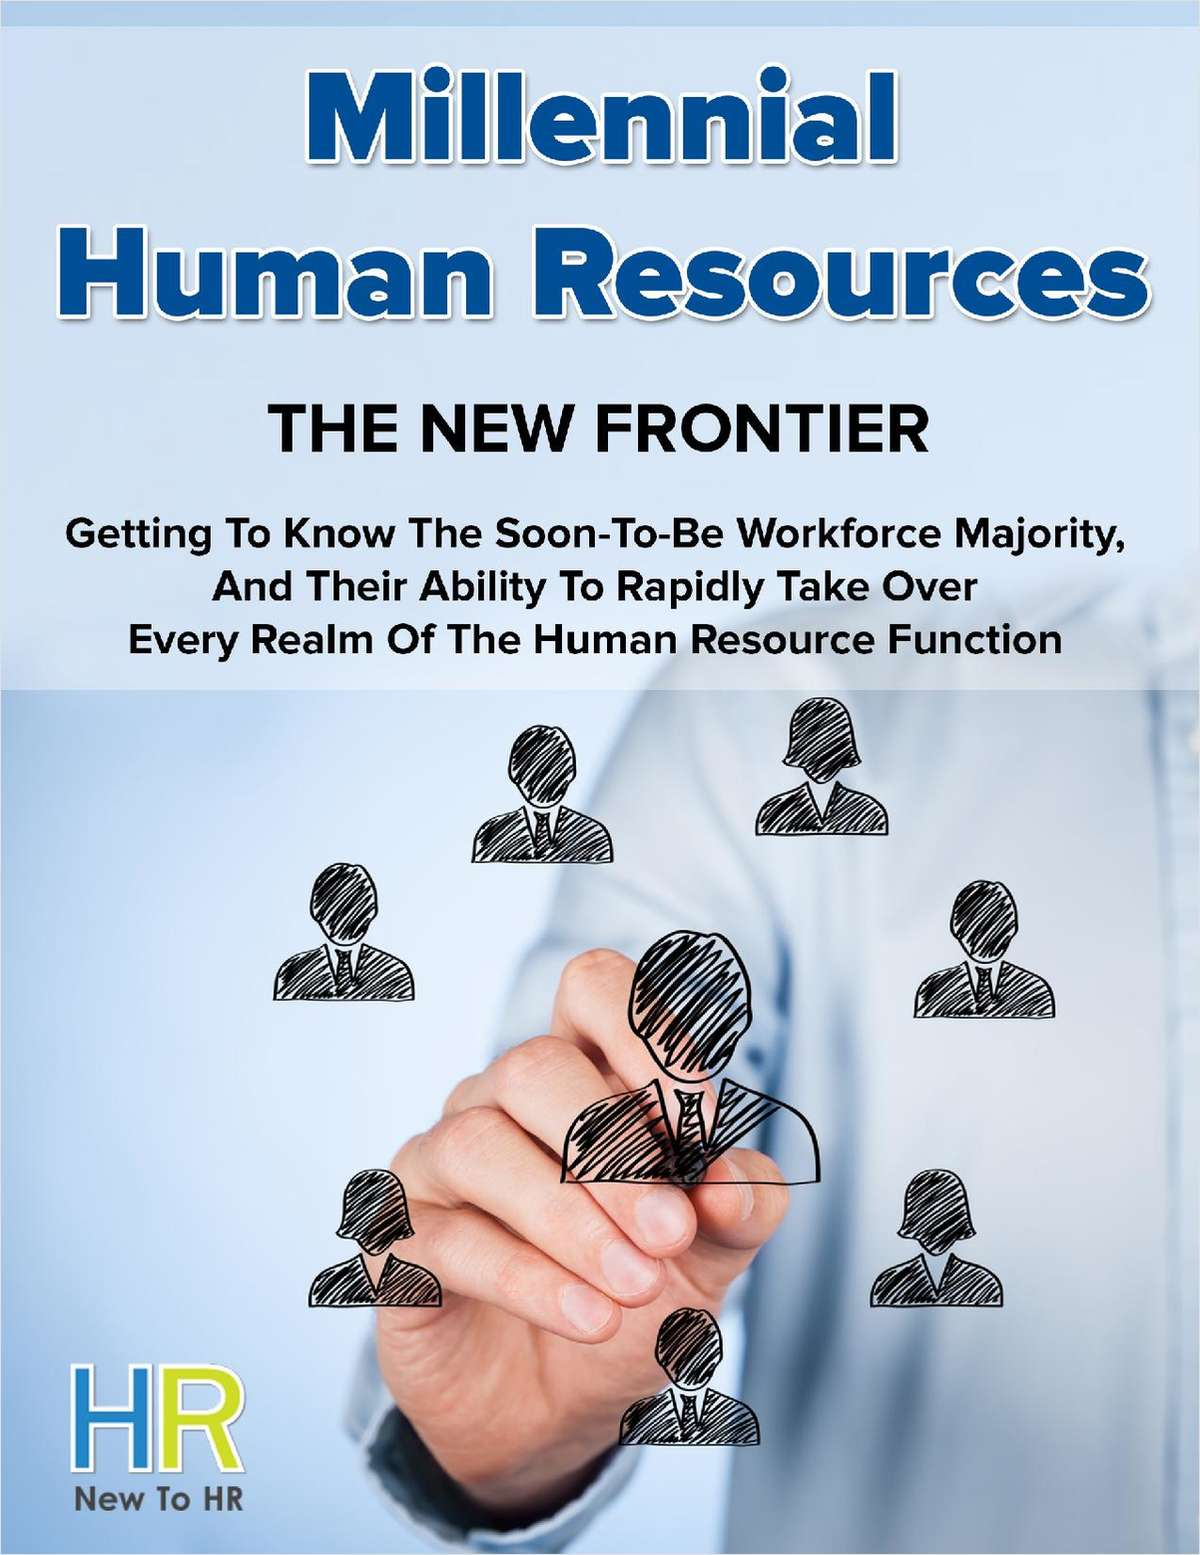 Millennial Human Resources: The New Frontier